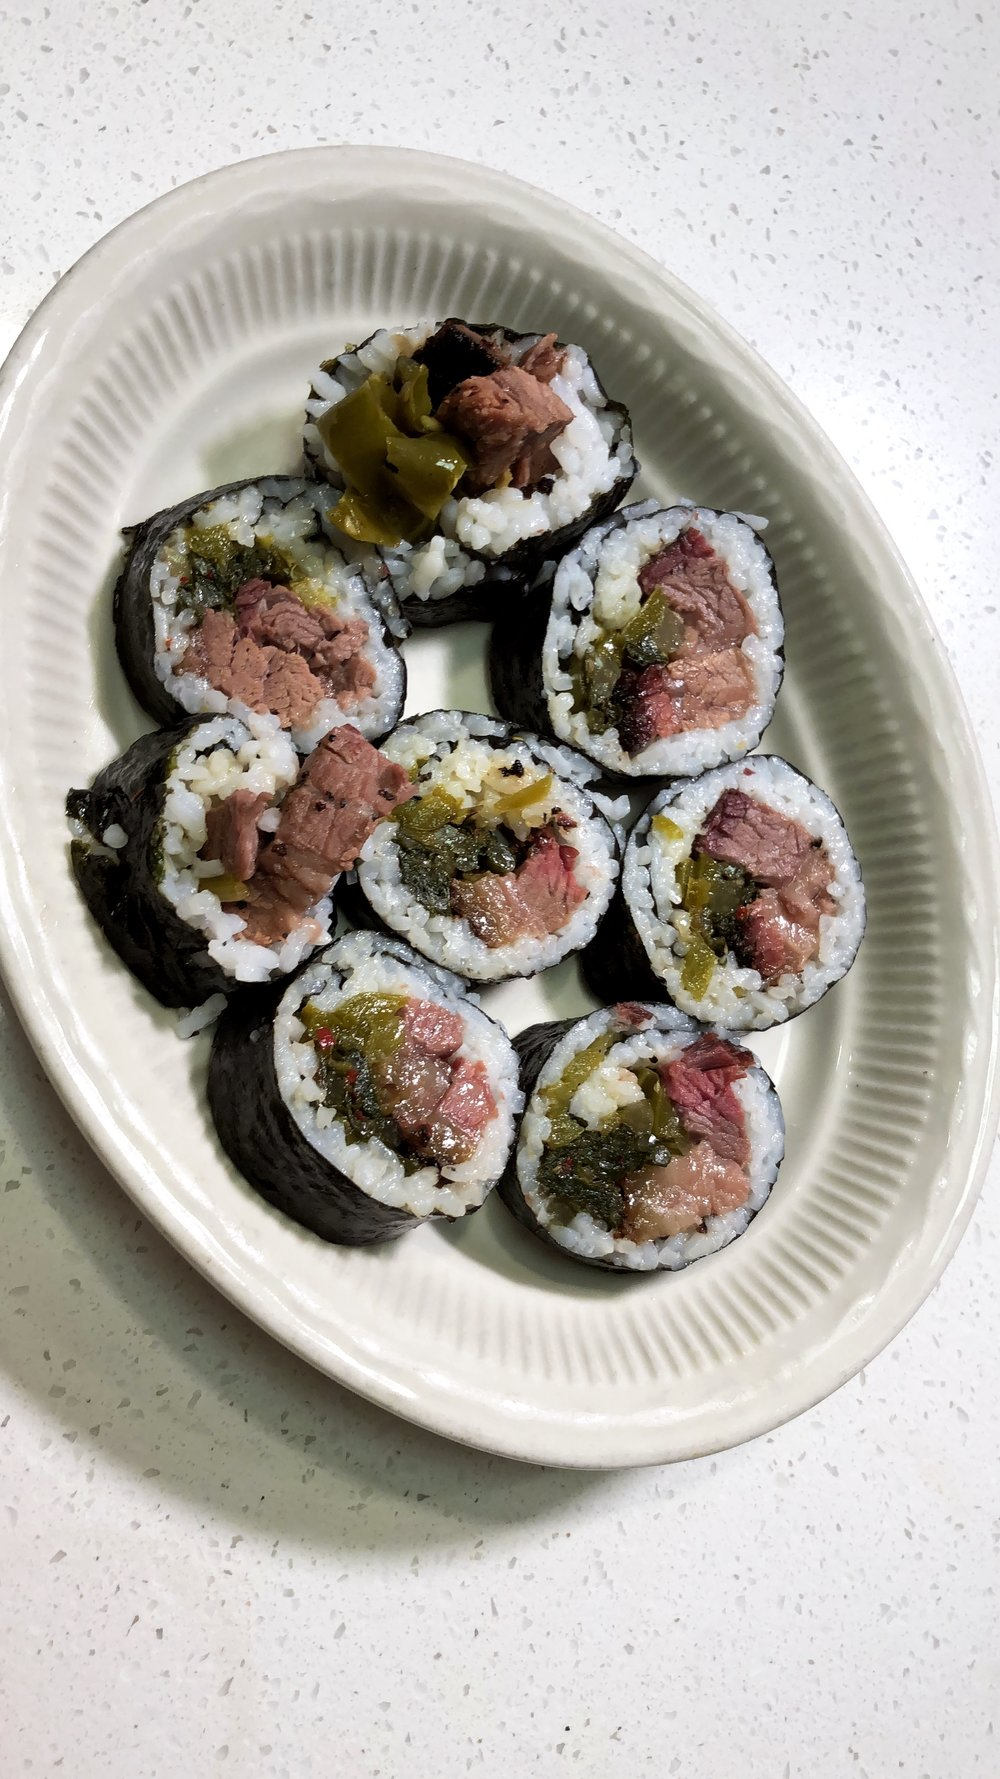 Kimbap filled with smoked Ranger Cattle Brisket, kimchi turnip greens, and sautéed sweet peppers